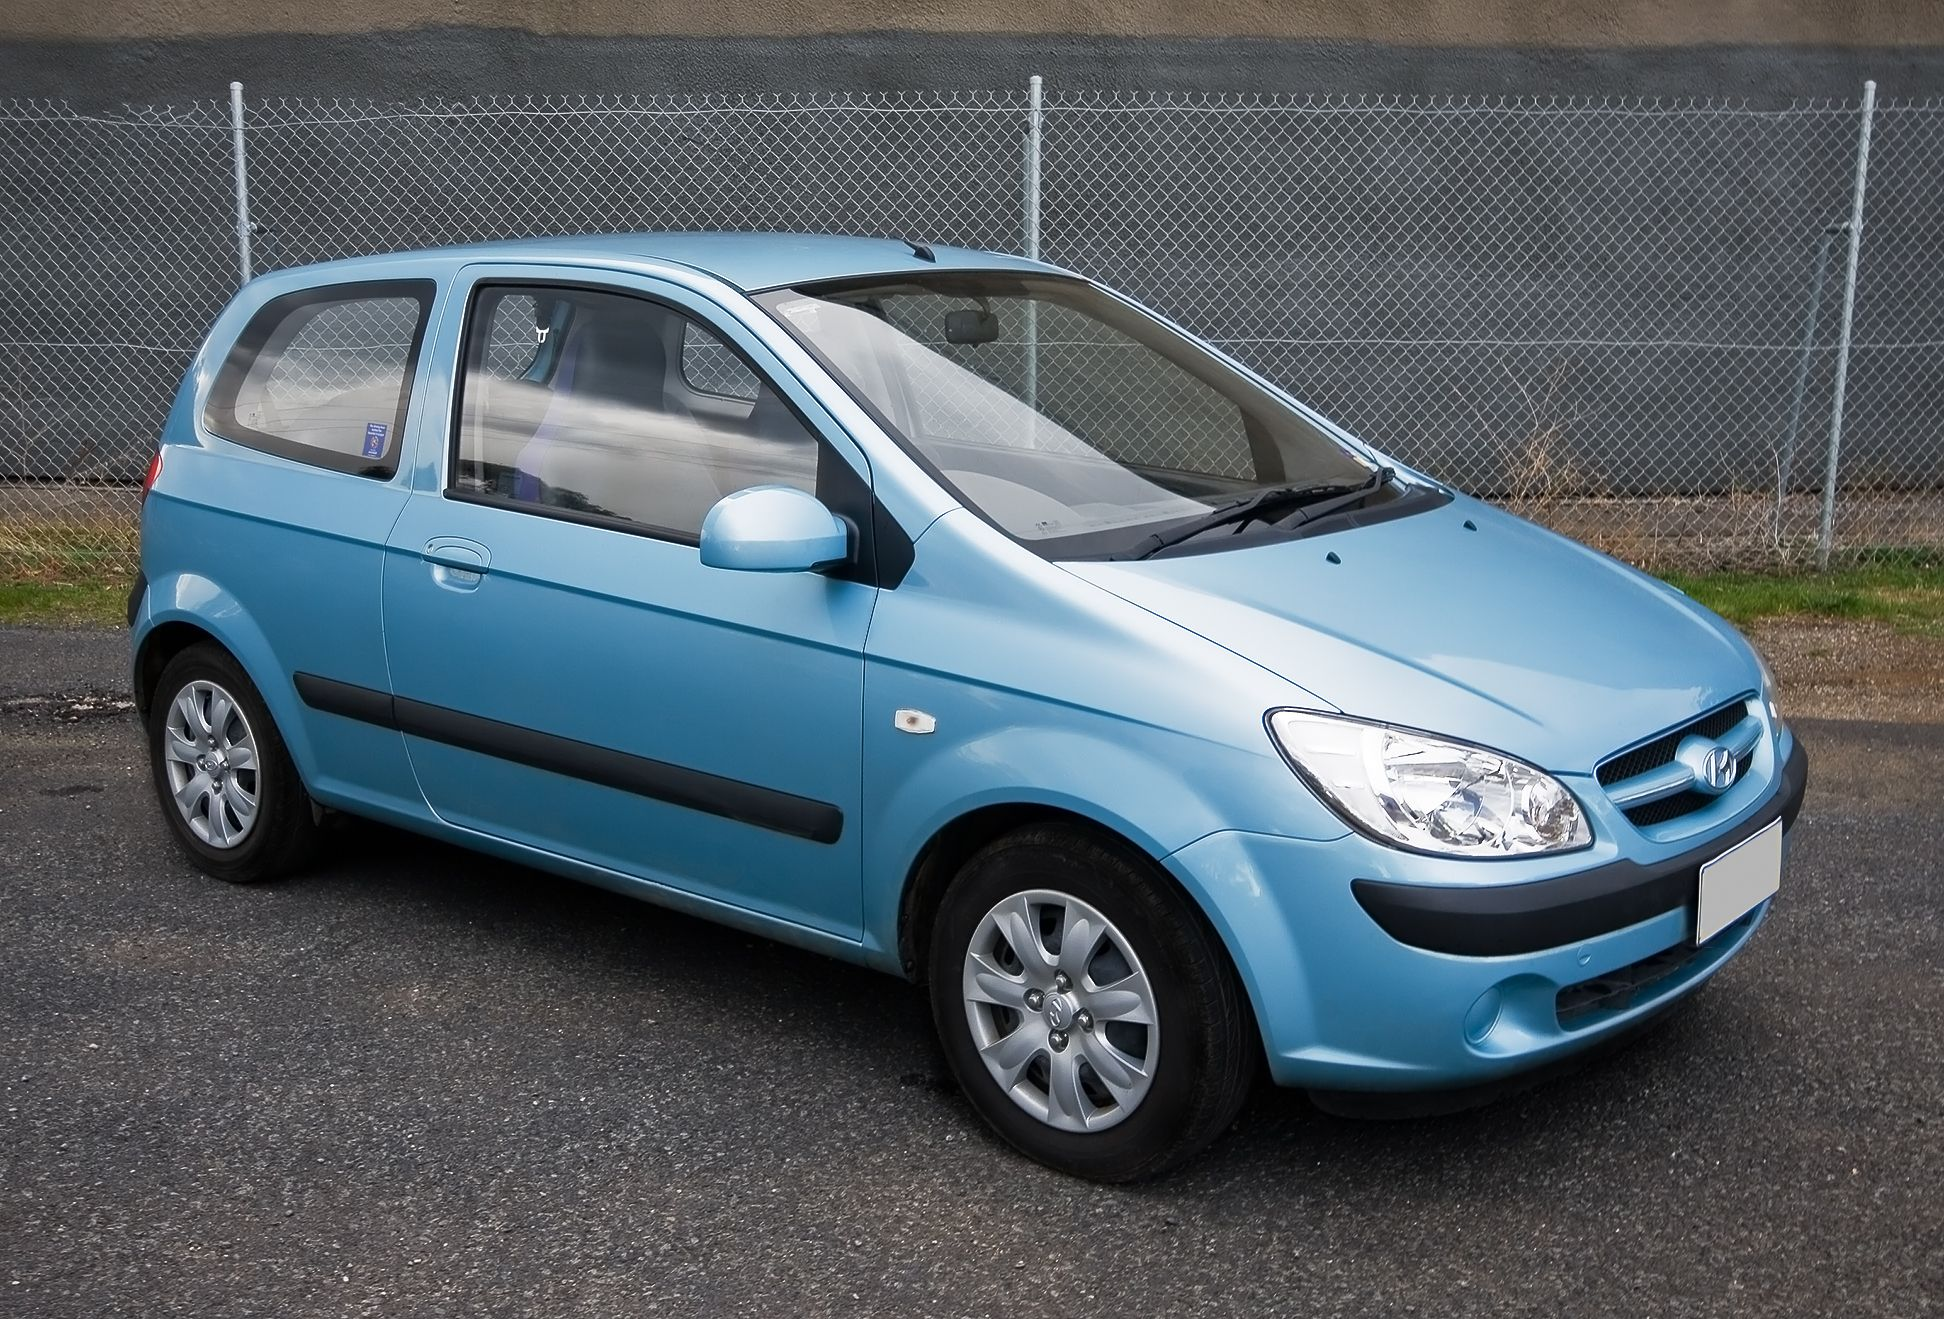 Hyundai Getz was marketed worldwide, except in the United States, Canada  and China. #HyundaiGetz #HyundaiGetzCarFacts #Luxury #Cars #HyundaiGetzCars  ...